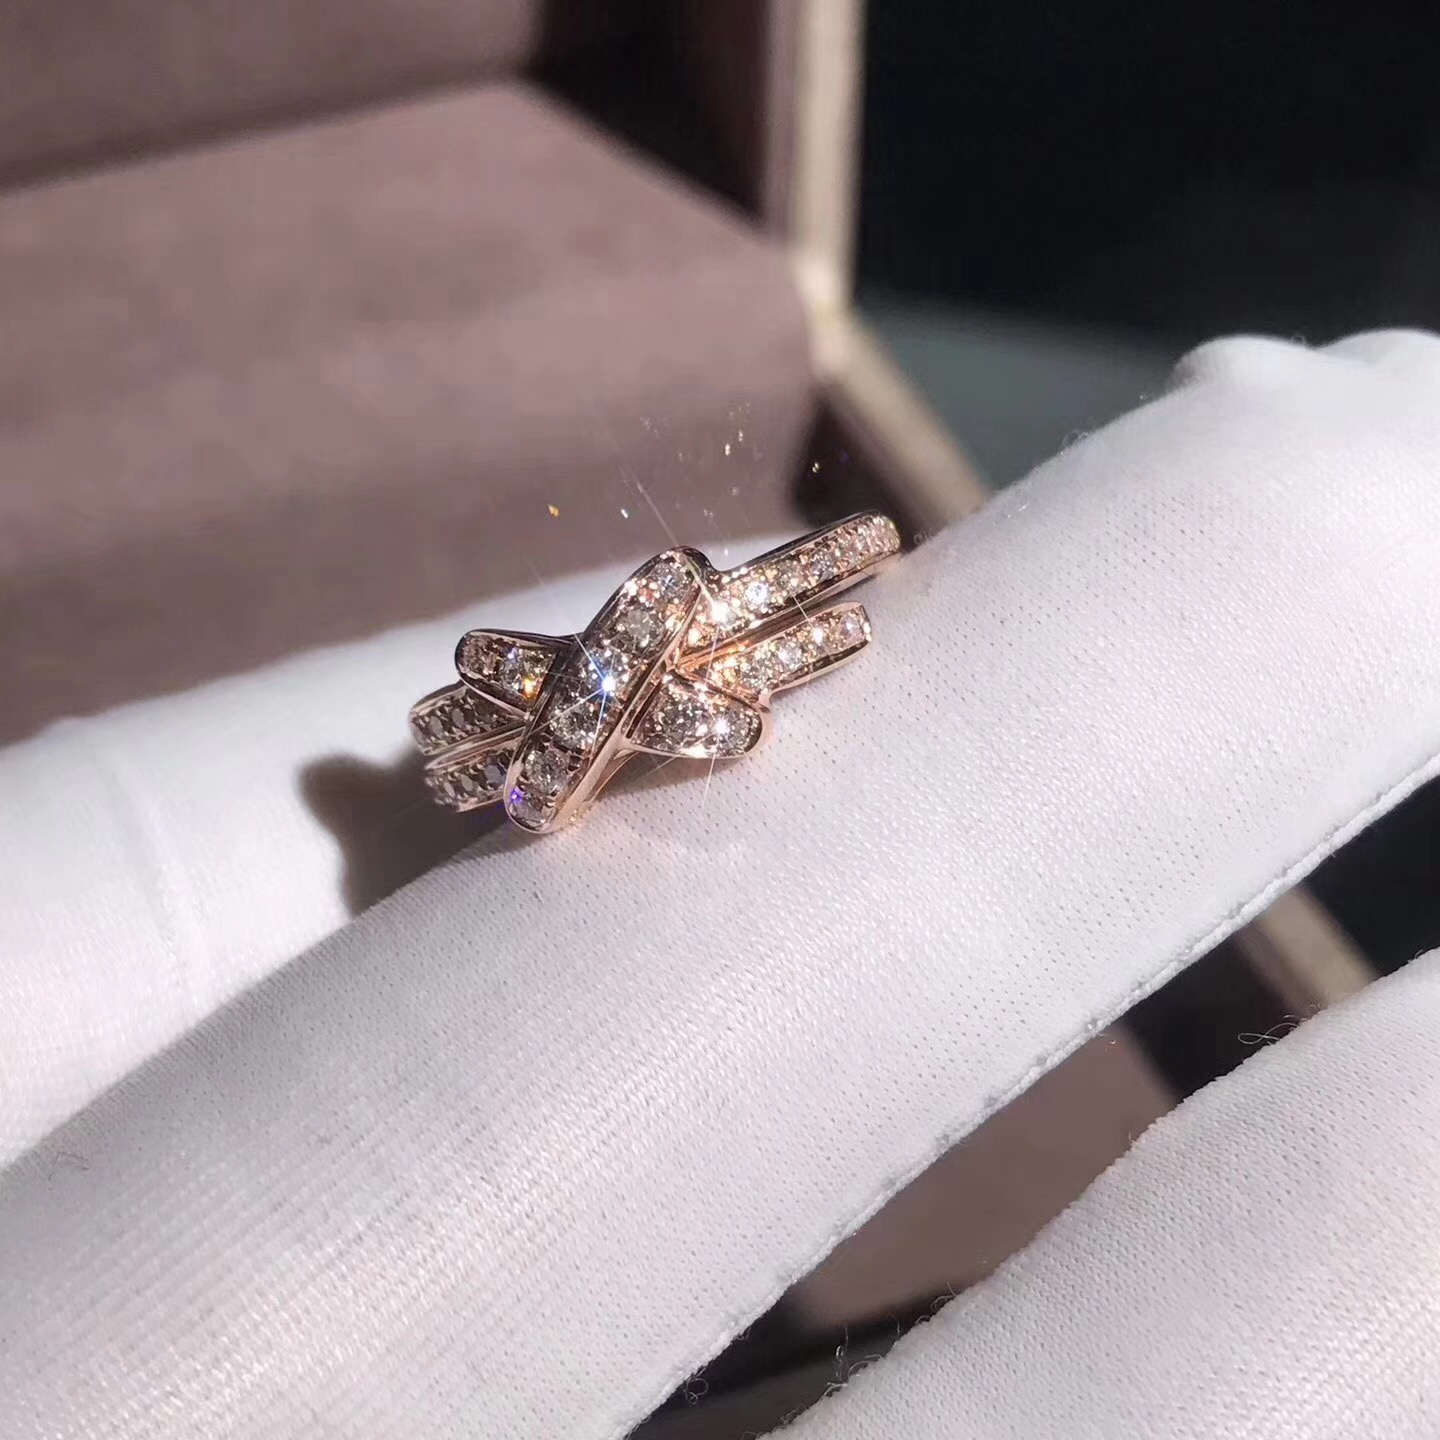 Liens de Chaumet Premiers Liens ring in 18k rose gold with pave diamond